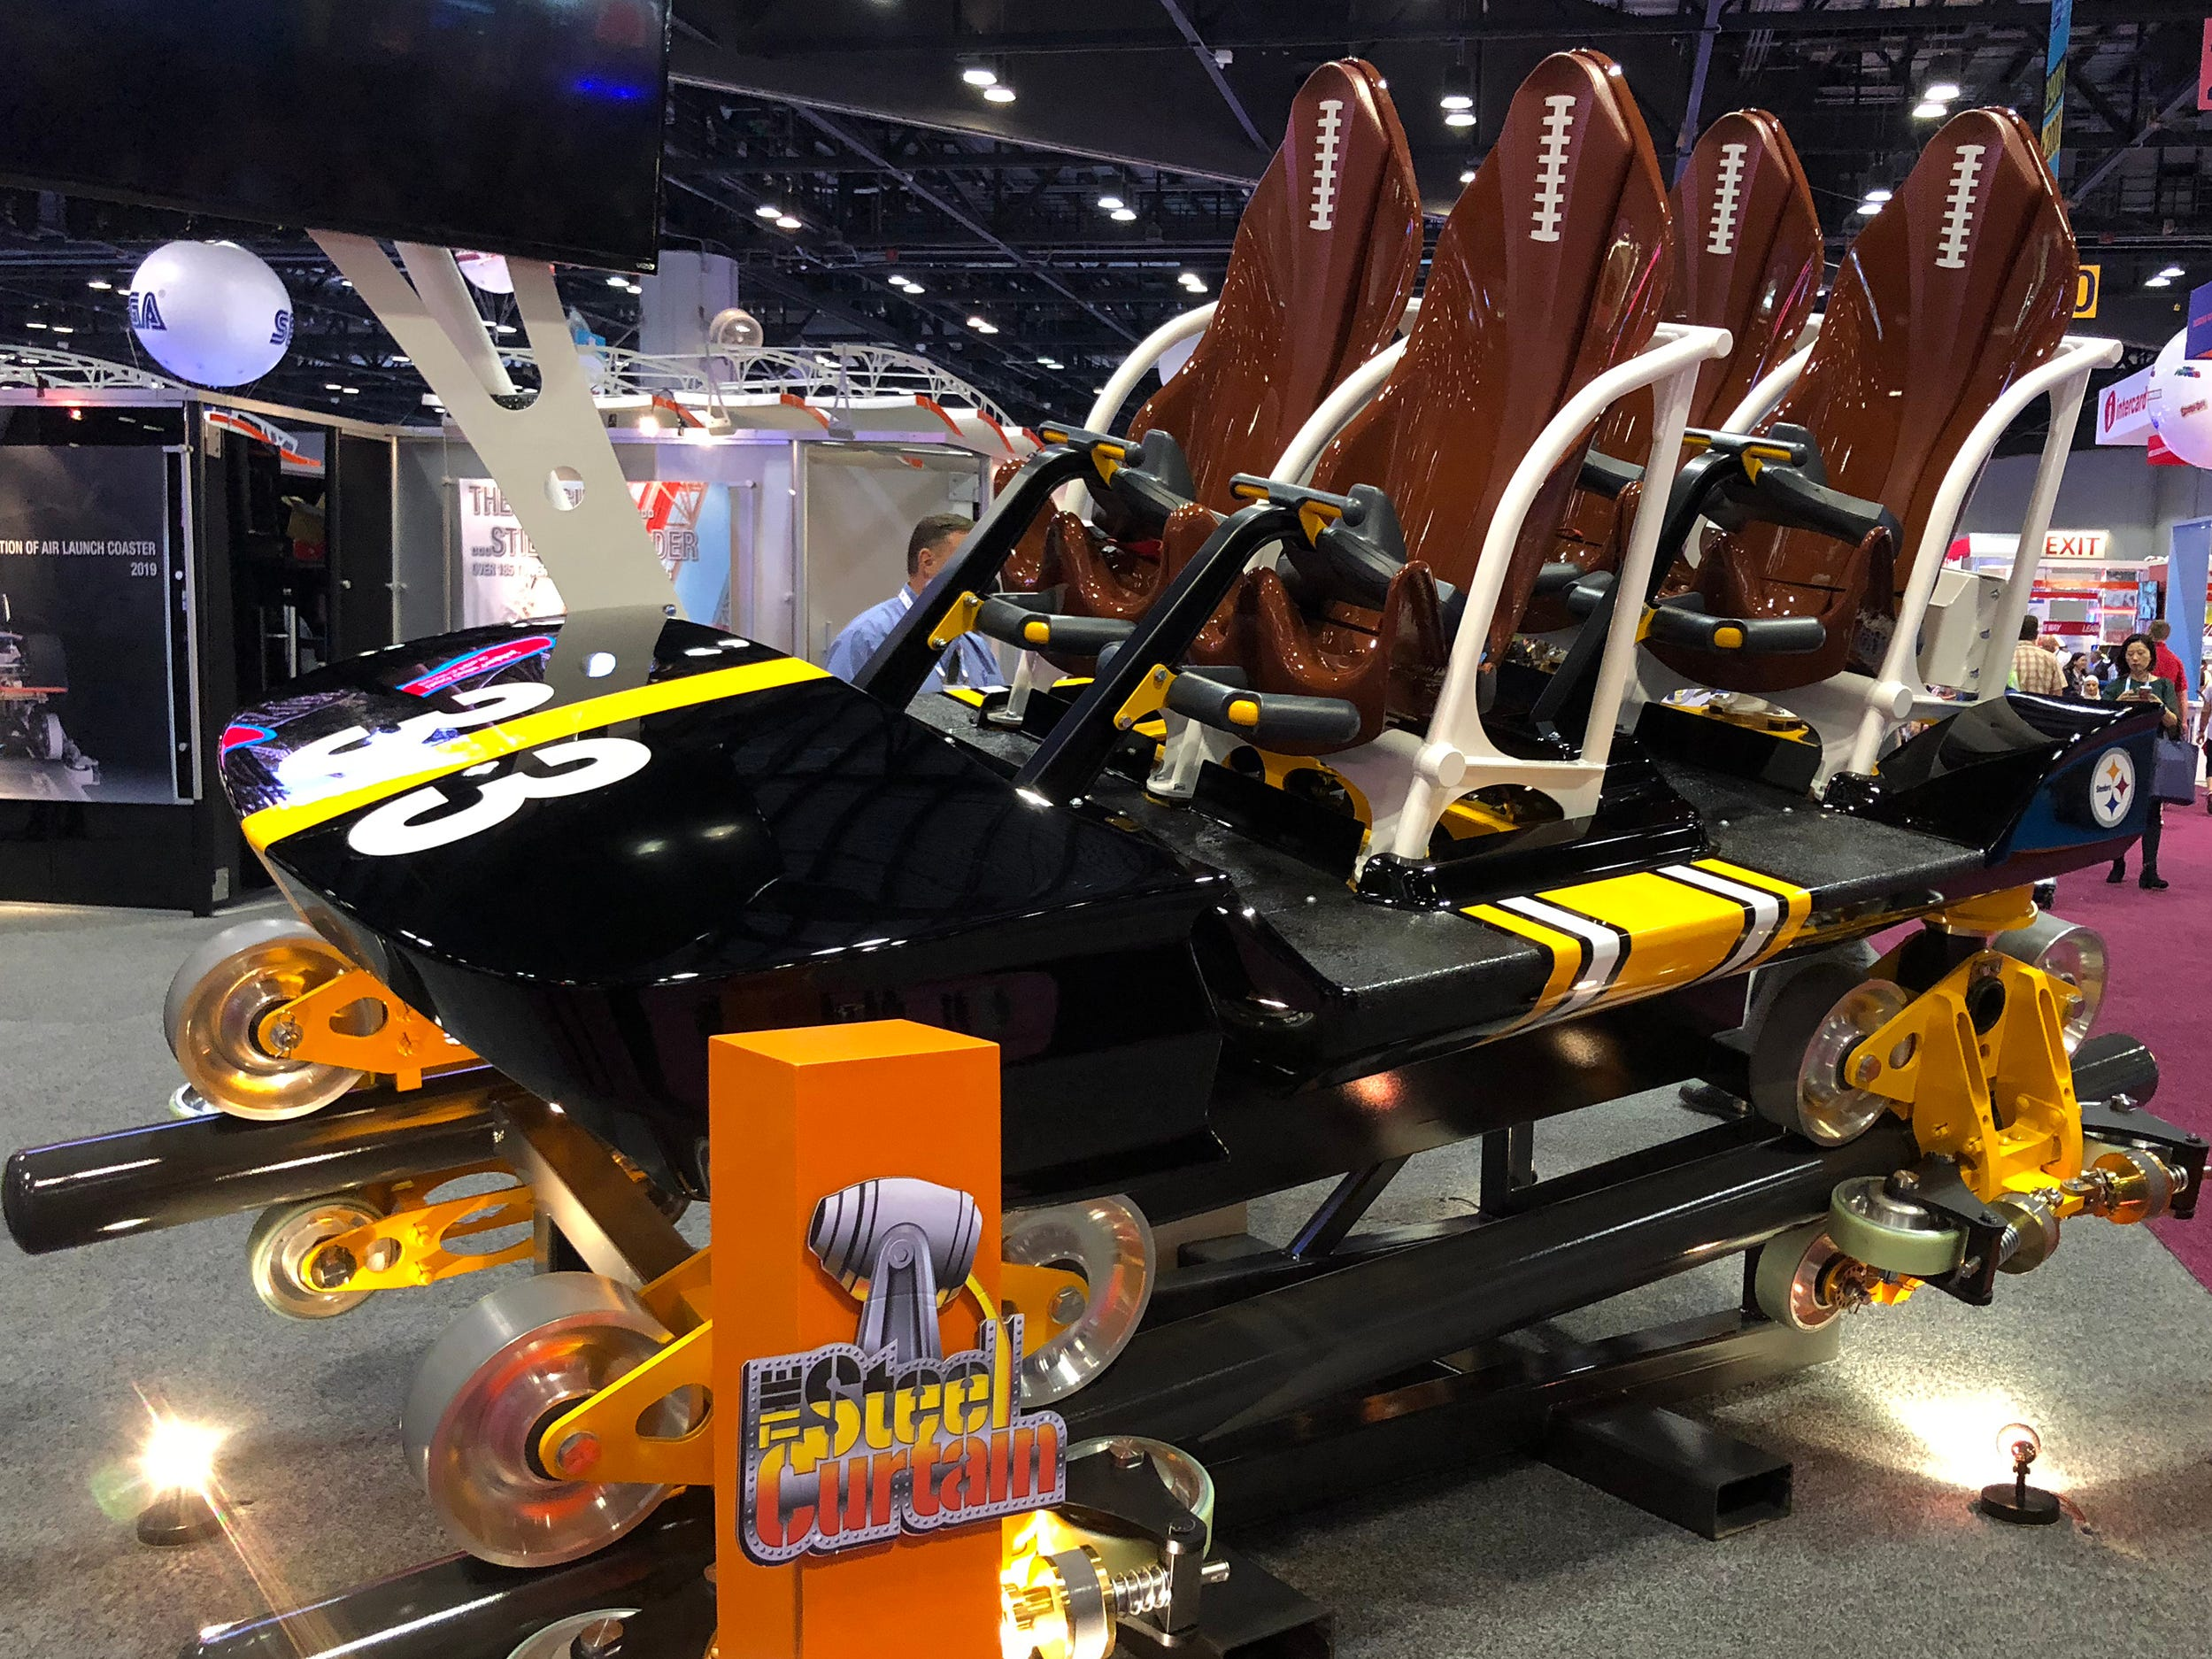 Expo attendees got to see football-inspired seats and the Pittsburgh Steelers' distinctive black and gold colors when S&S Sansei Technologies offered a first look at the lead car for the Steel Curtain, the 220-foot-tall, 75 mph behemoth coming to the Pennsylvania amusement park, Kennywood.